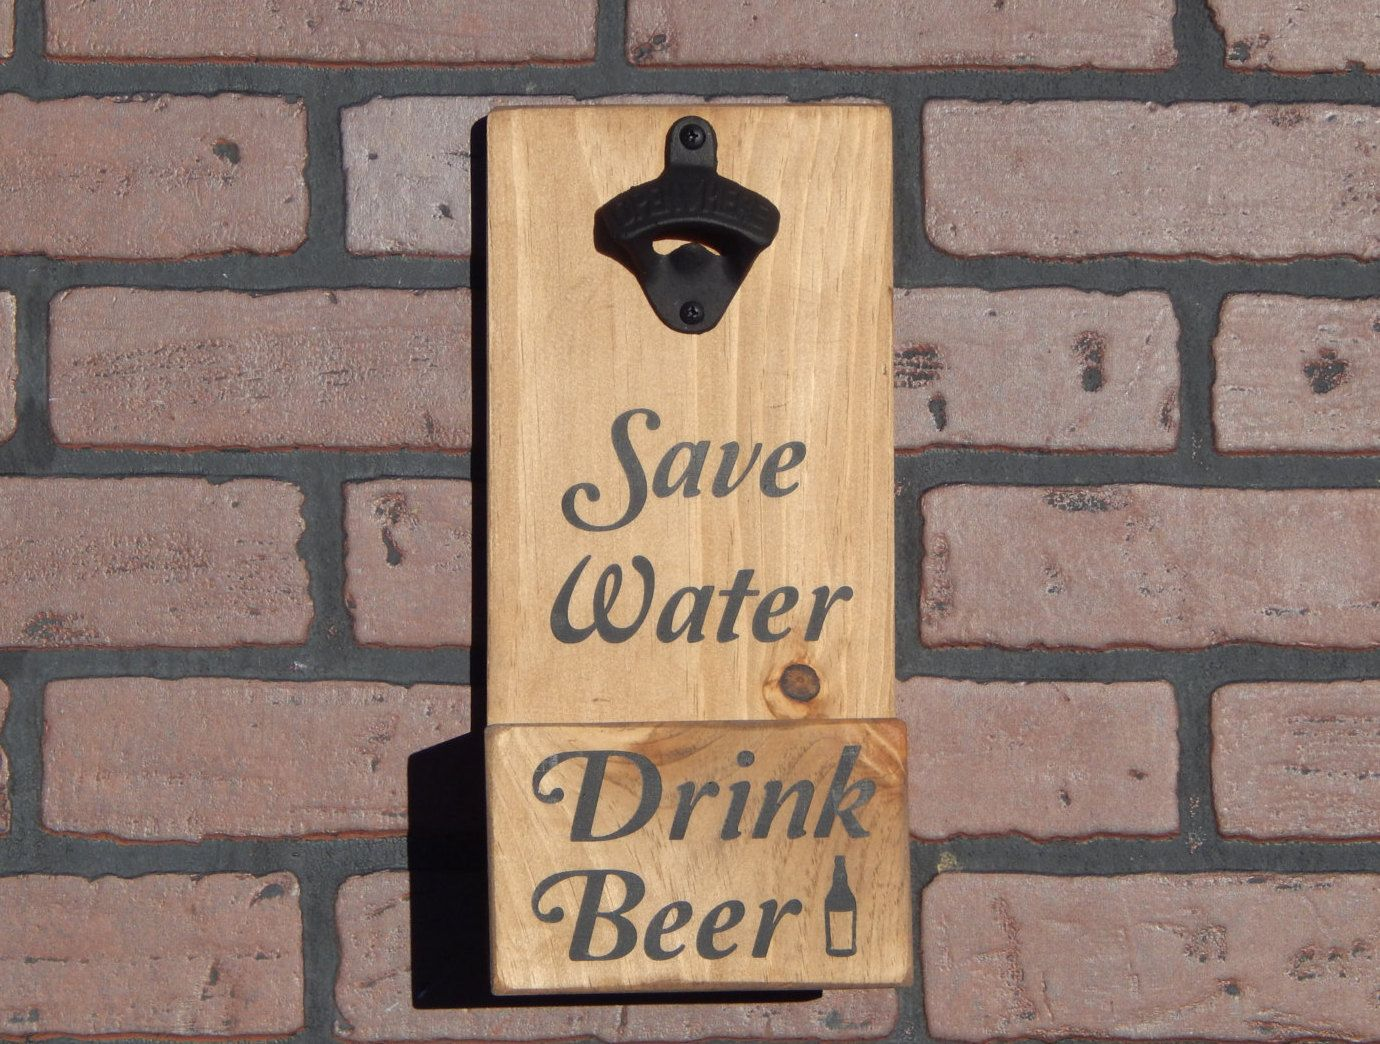 Save Water Drink Beer Wall Mounted Bottle Opener w/ Cap Catcher & Easy Removal System-Custom Colors/Styles - Great Gift for Bars, Man Caves! by GrizzlyBearCreations on Etsy